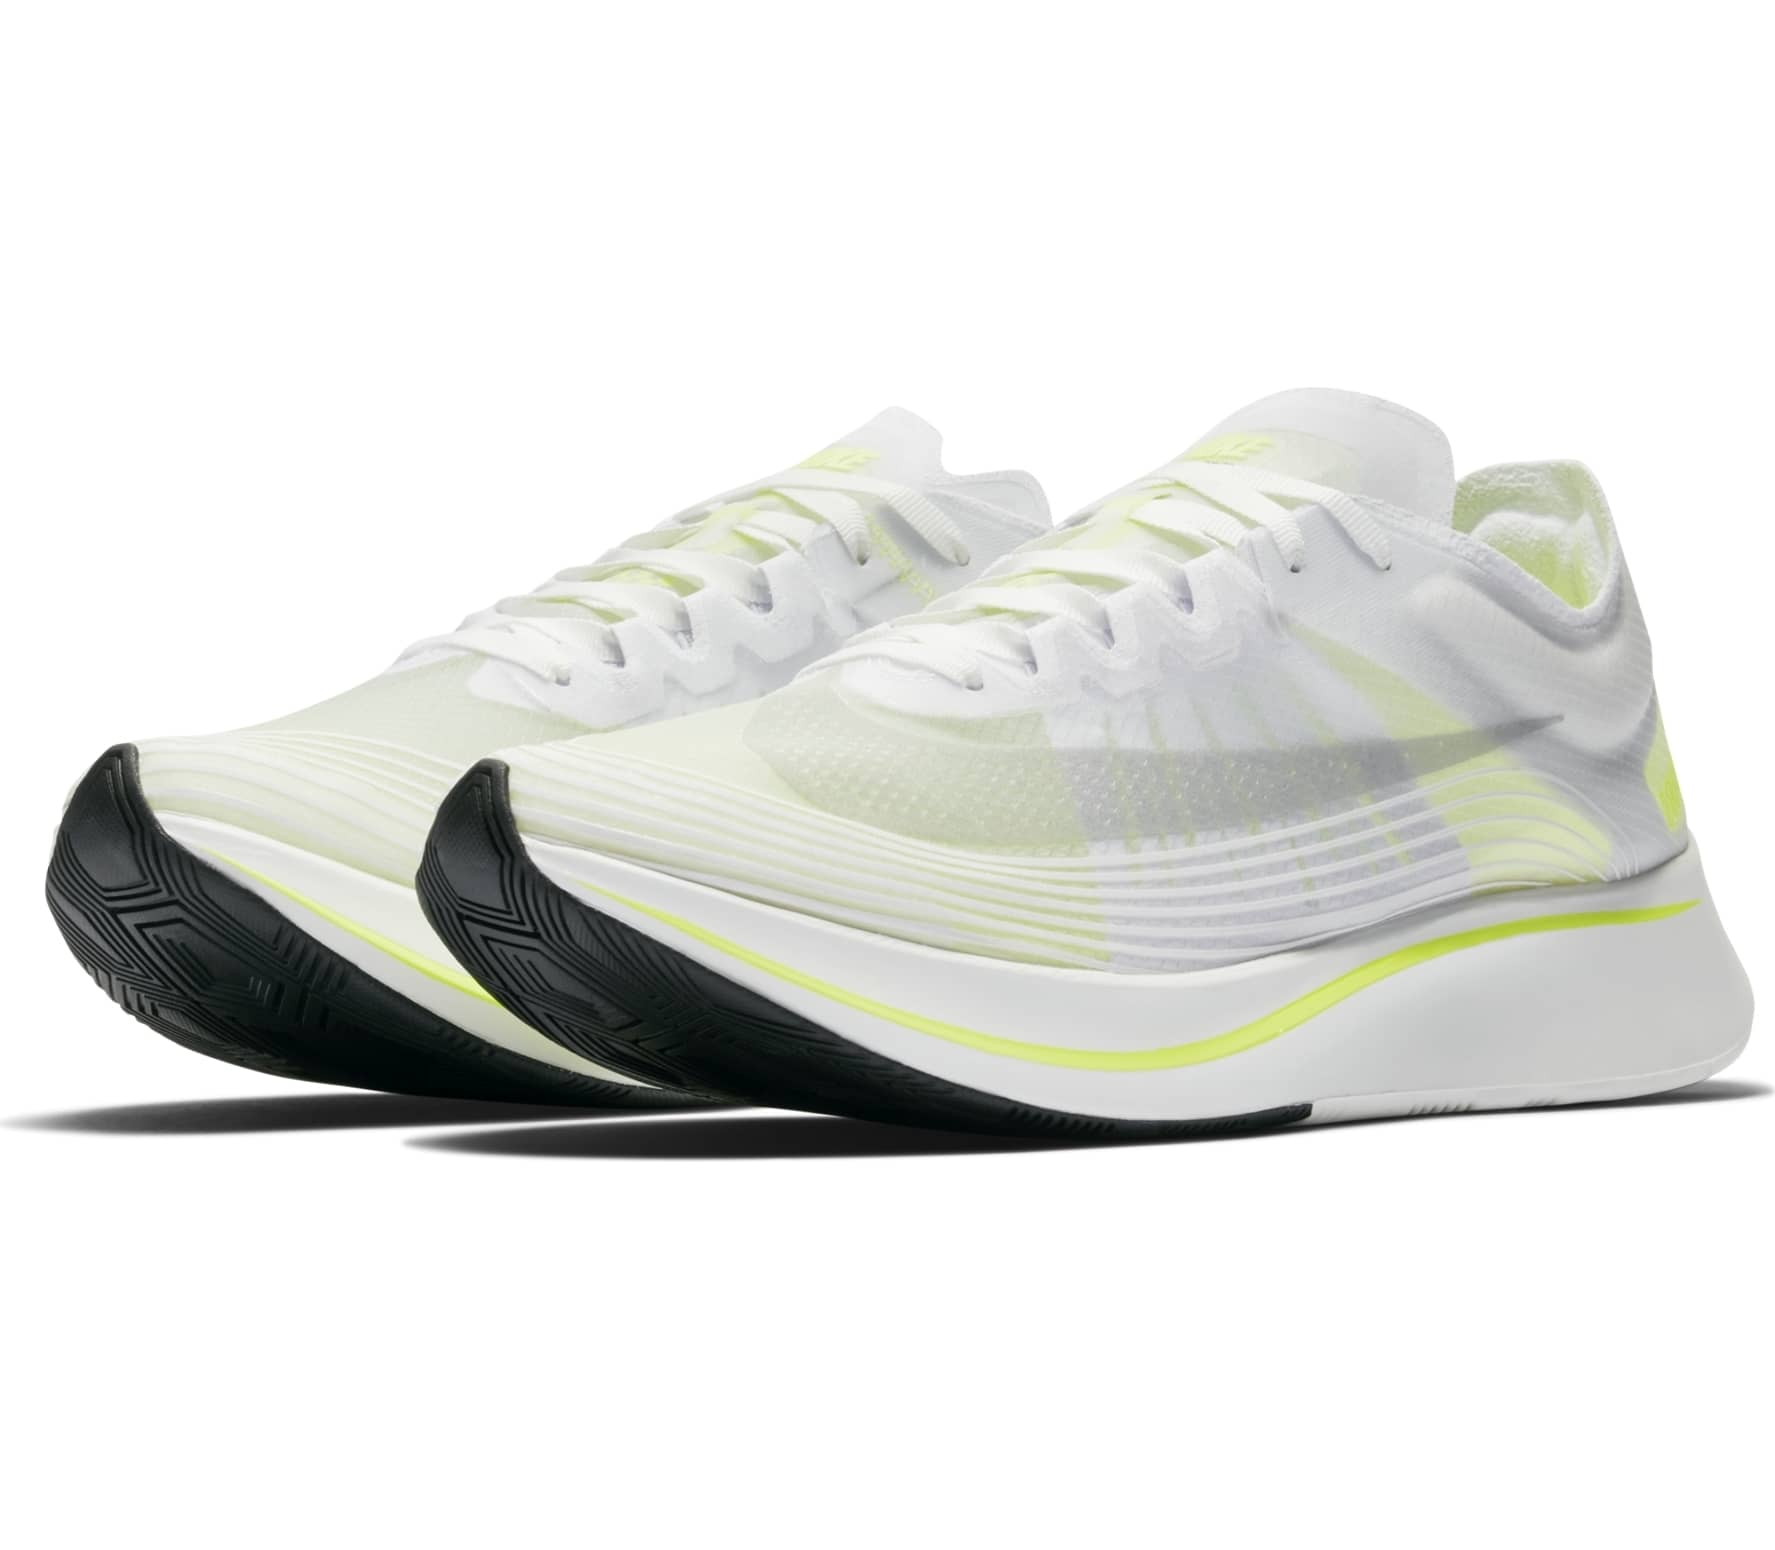 low priced 9e839 11775 Nike - Zoom Fly SP mens running shoes (white)